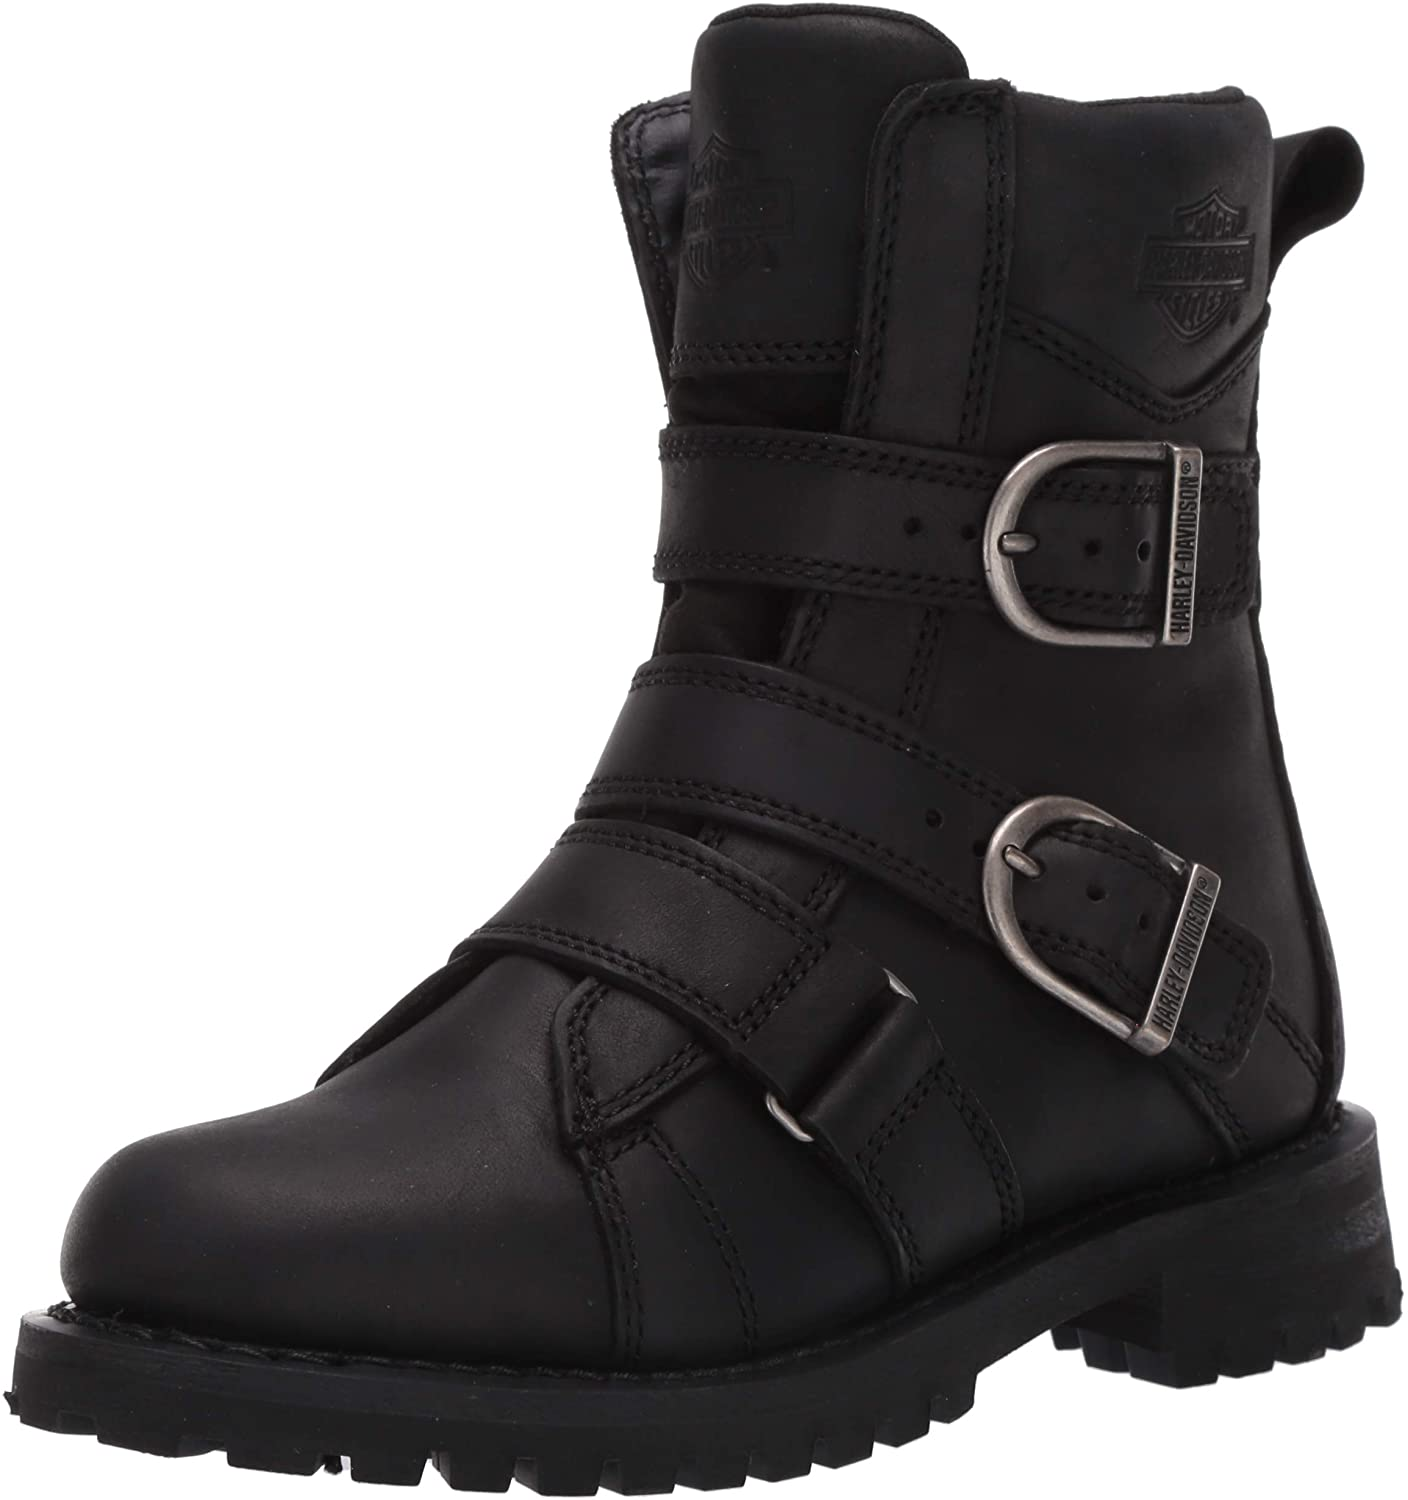 HARLEY-DAVIDSON FOOTWEAR Women's Hemford Riding Boot Motorcycle